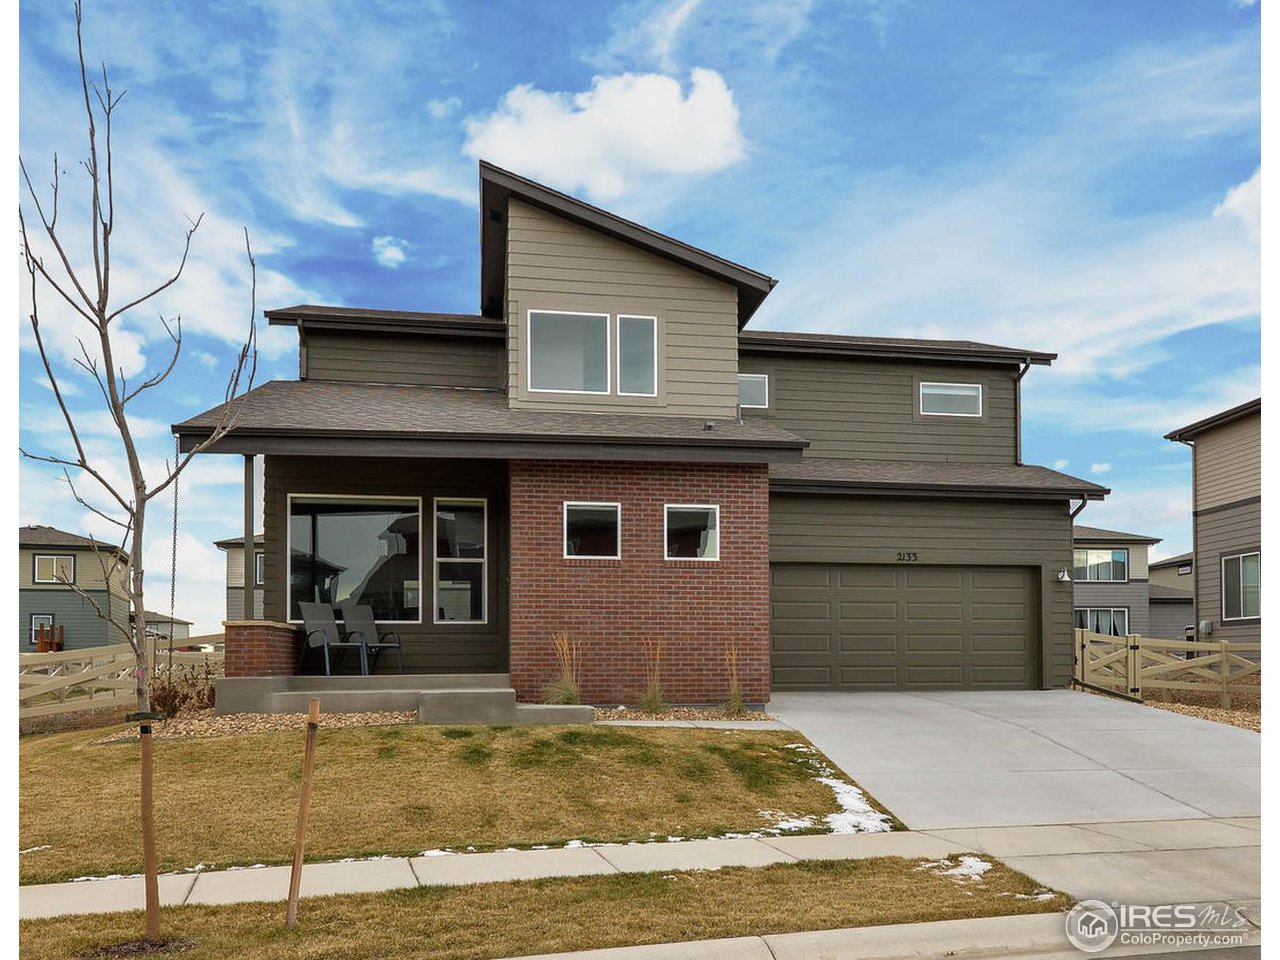 2133 Lambic St, Fort Collins CO 80524